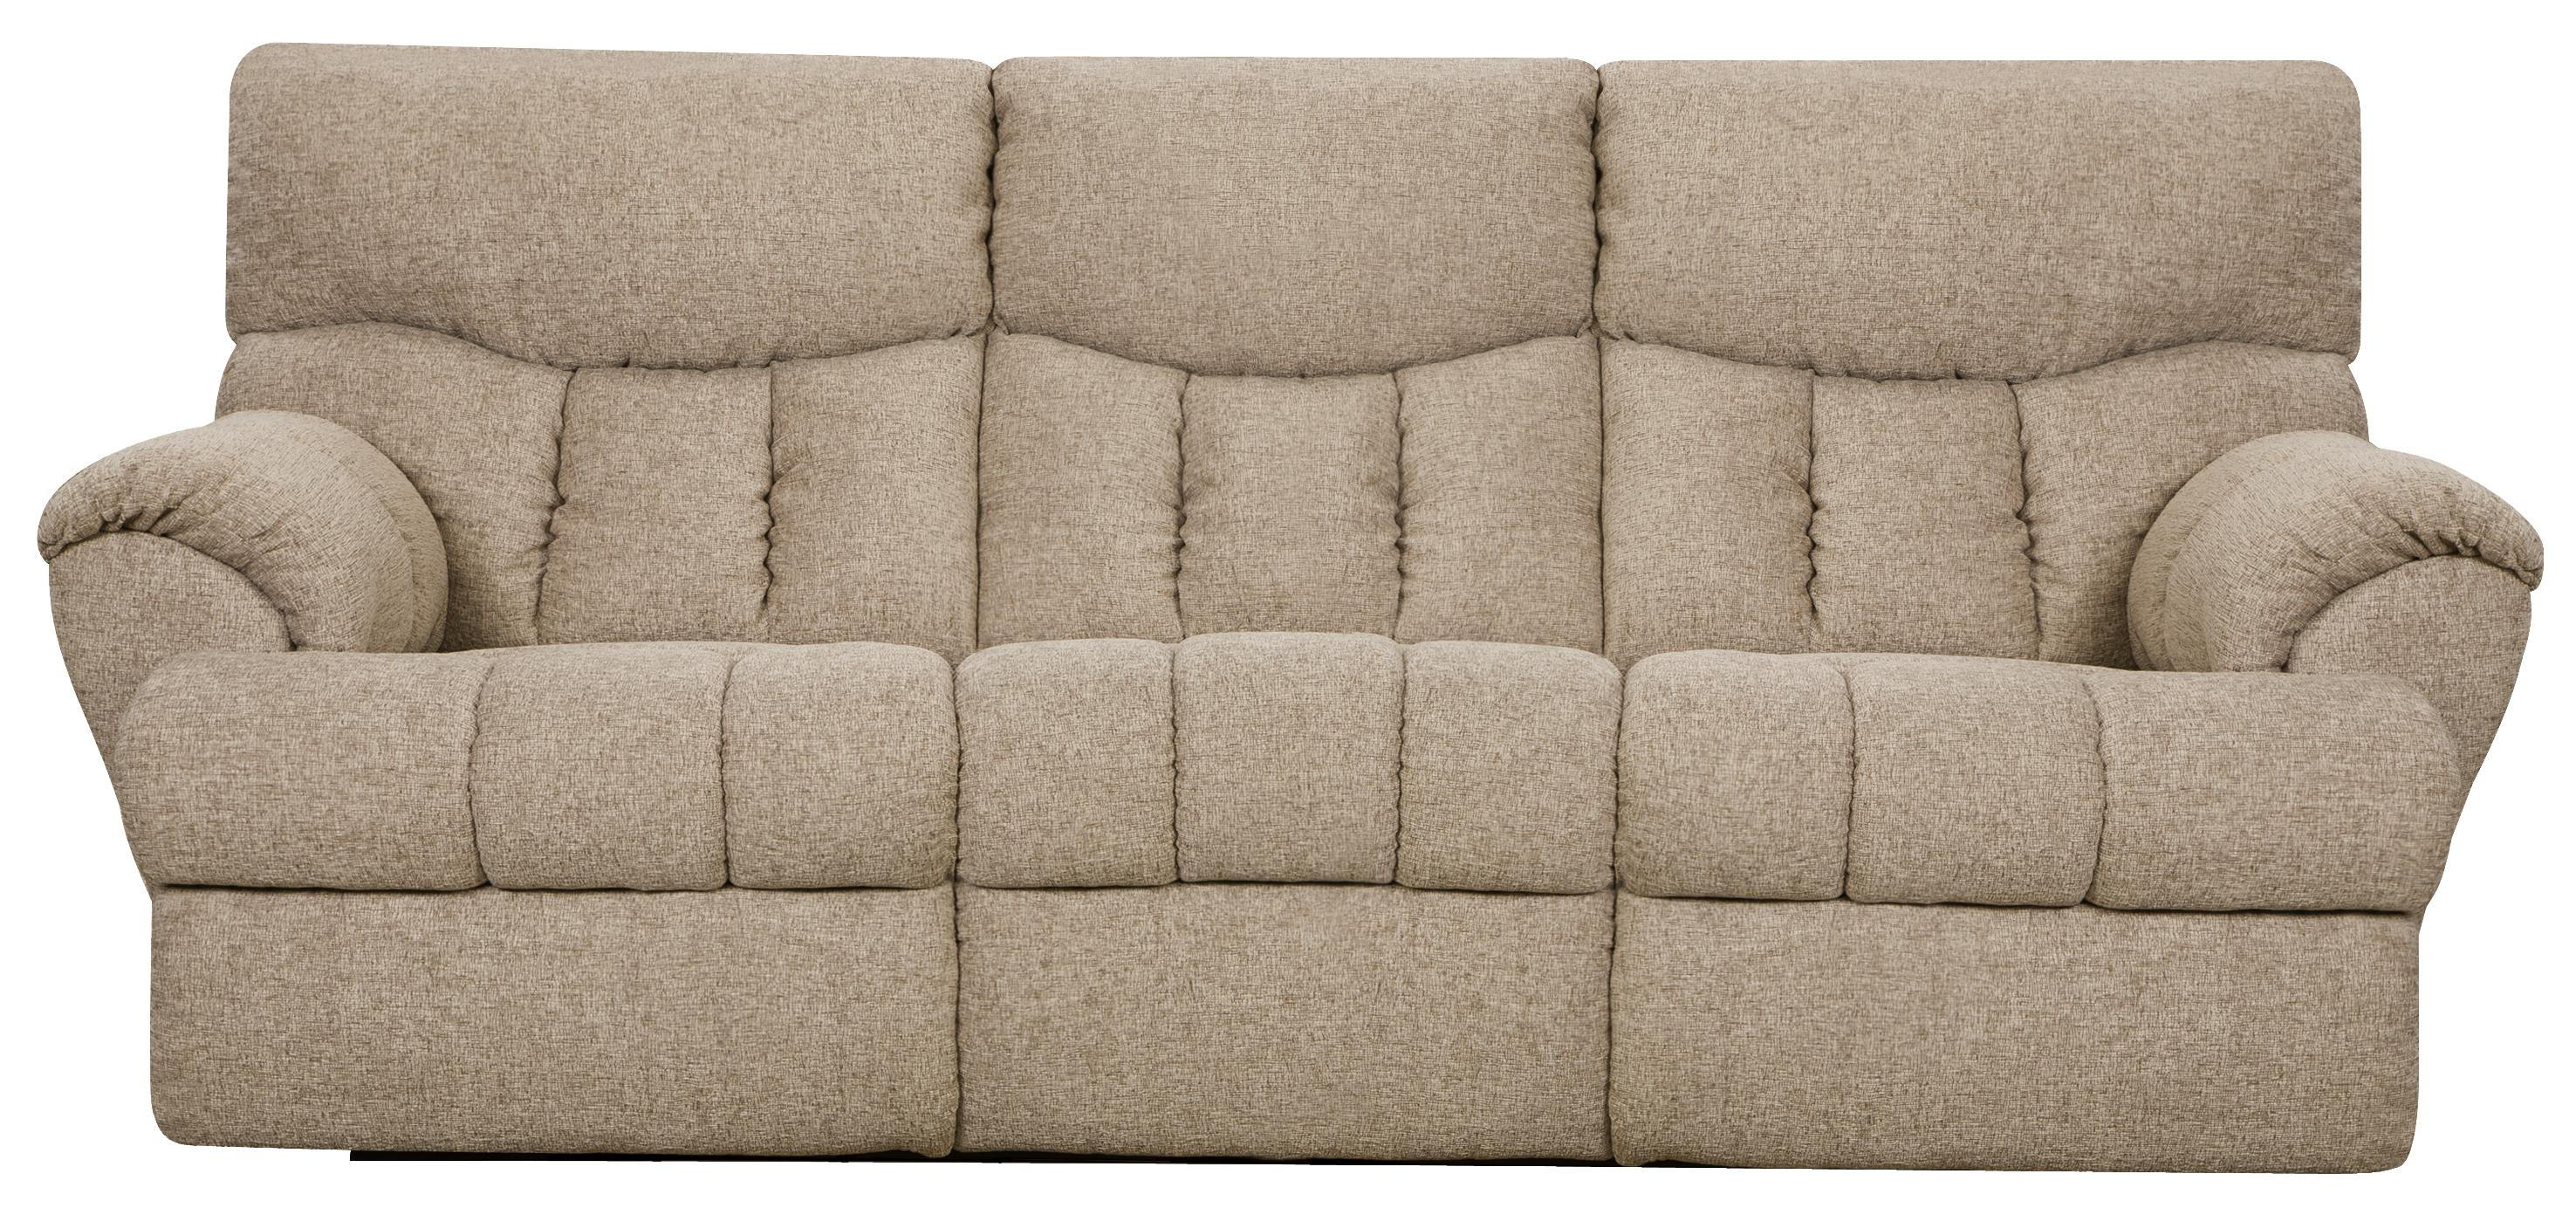 Southern Motion Re Fueler Powerized Double Reclining Sofa with Two